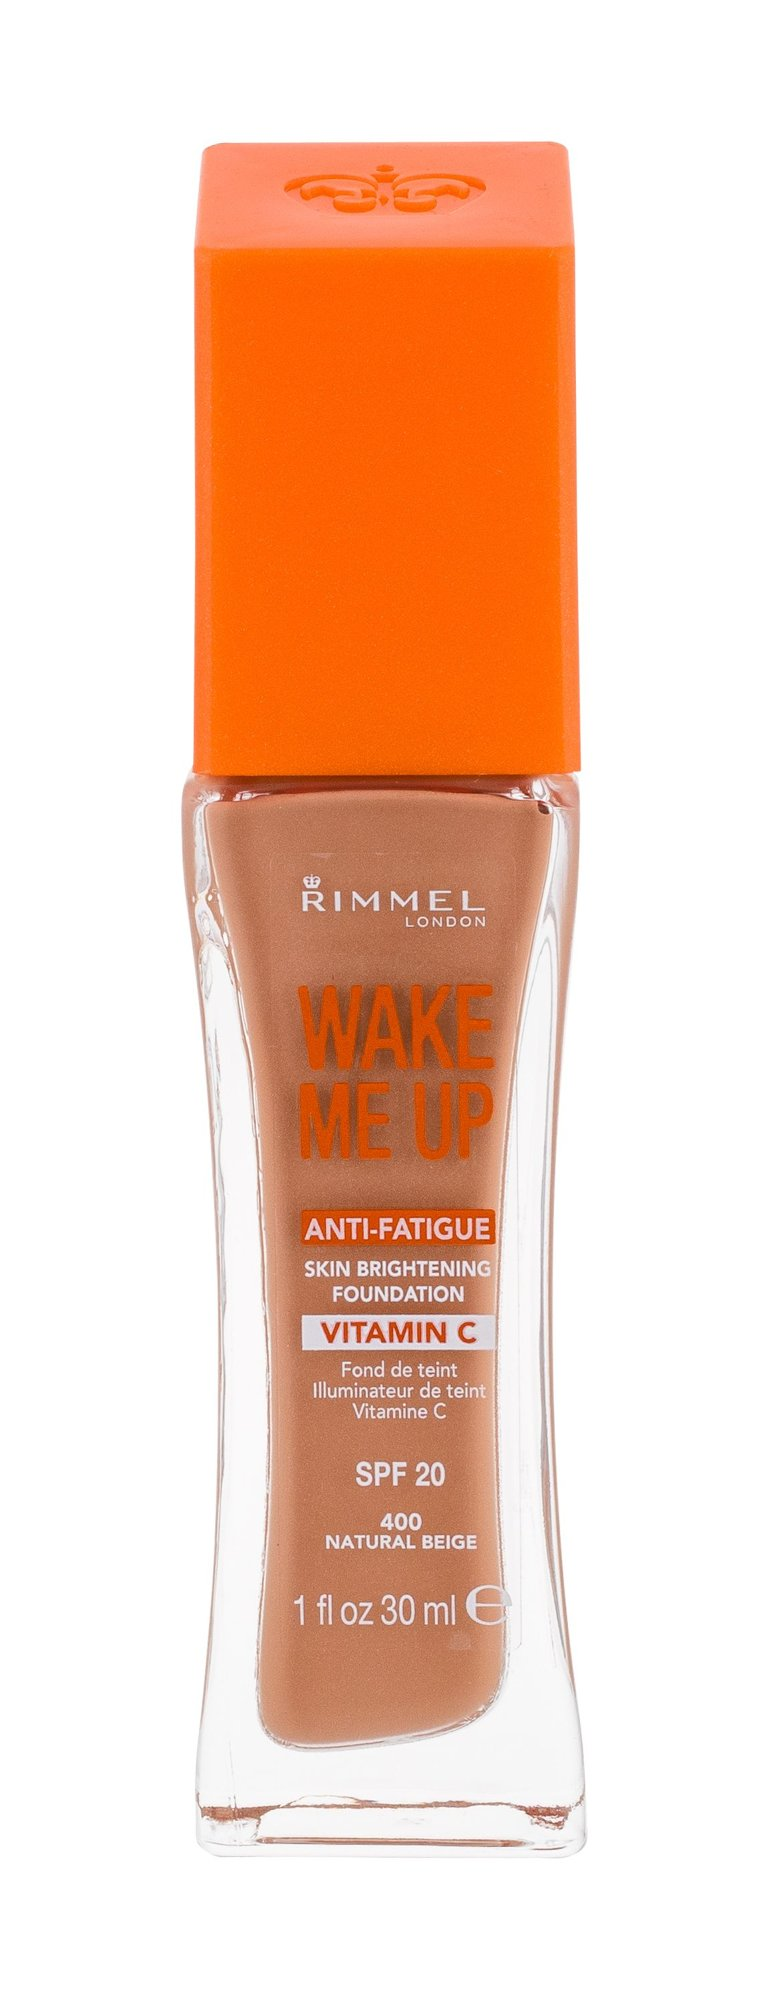 Rimmel London Wake Me Up Cosmetic 30ml 400 Natural Beige